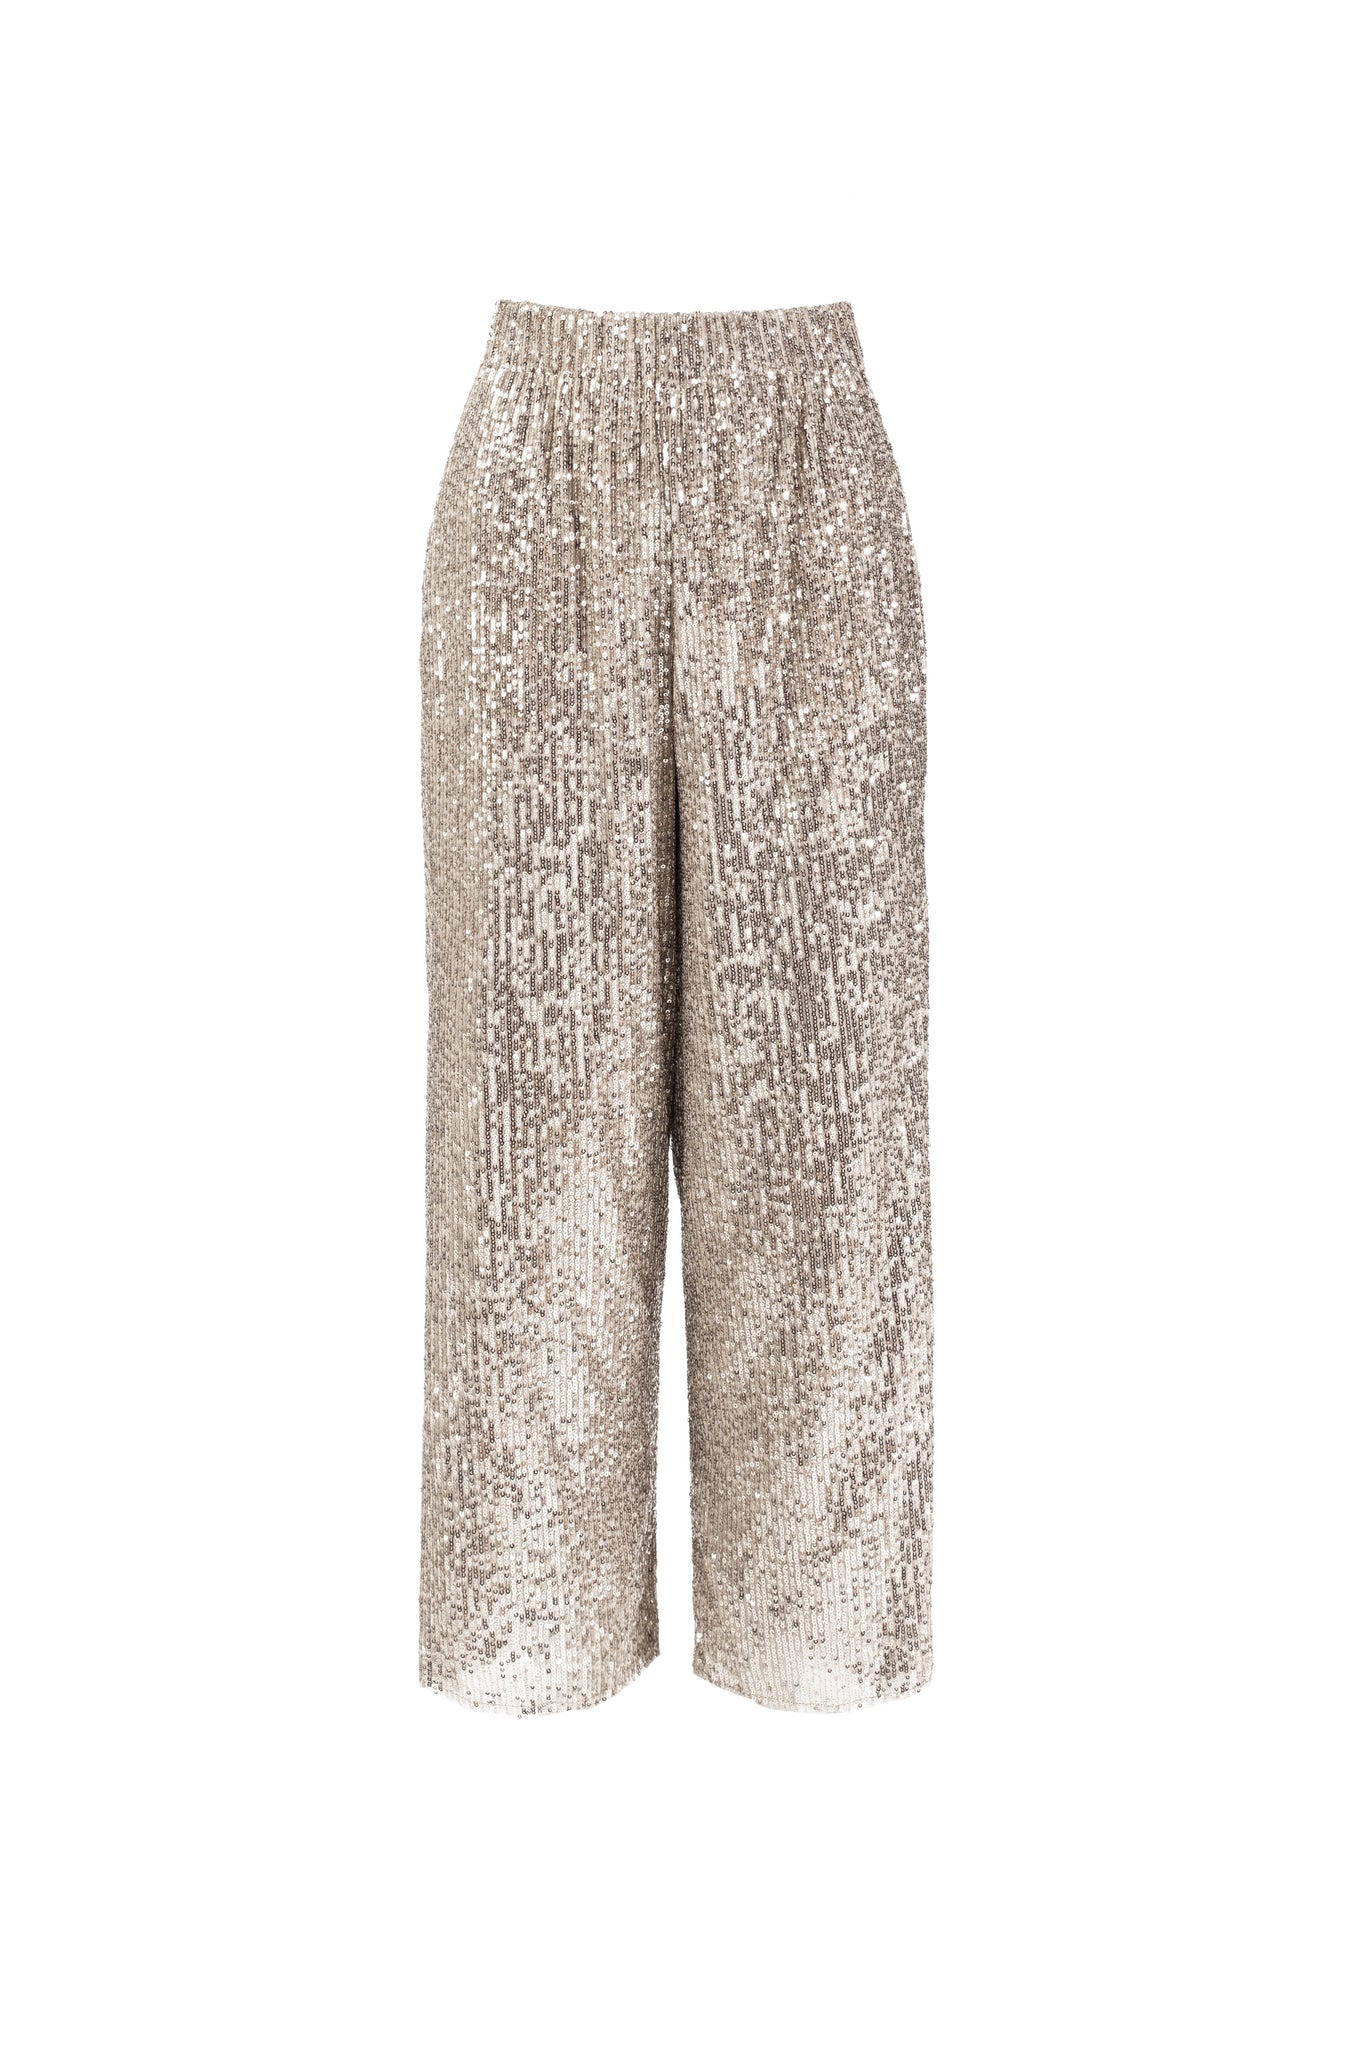 9775 - OUANI - SEQUINS SILVER PANTS -BYOU by Patricia Gouveia